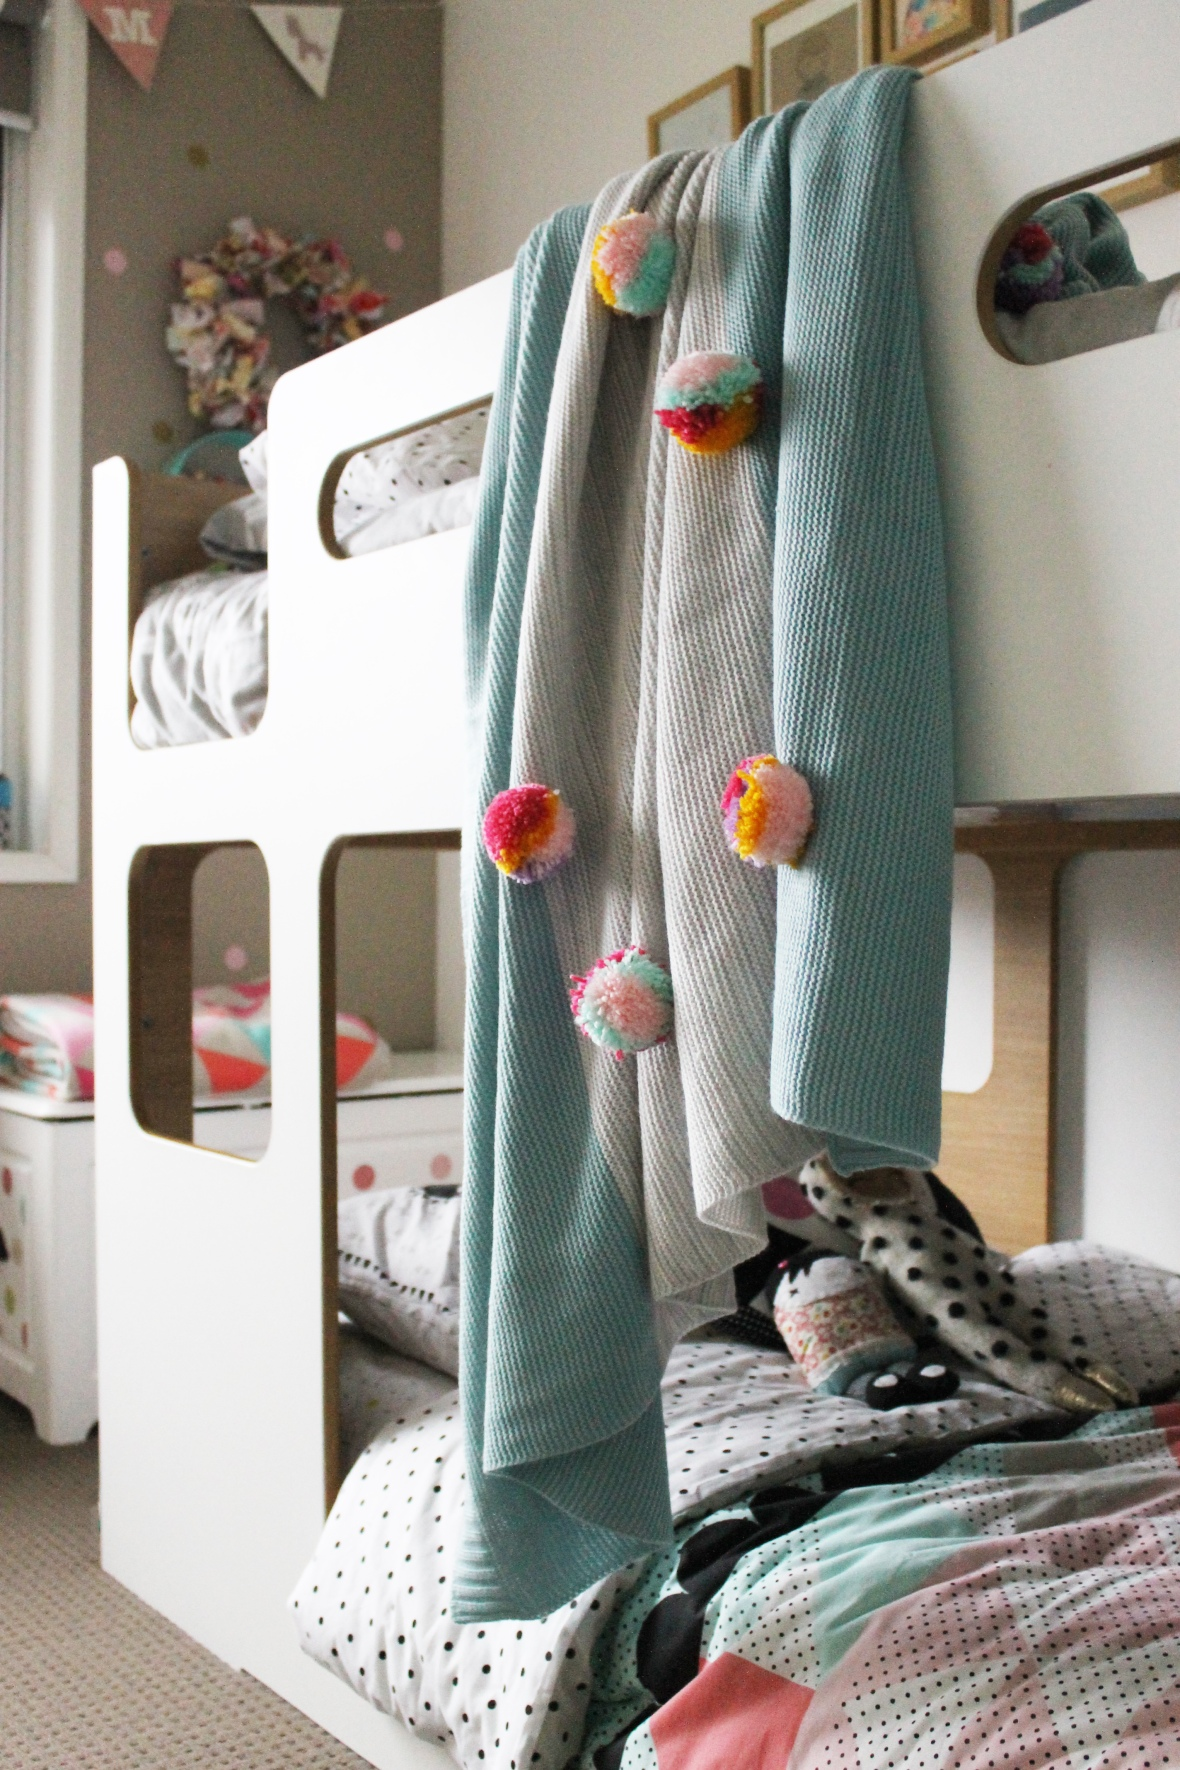 pompomblanket_Room2